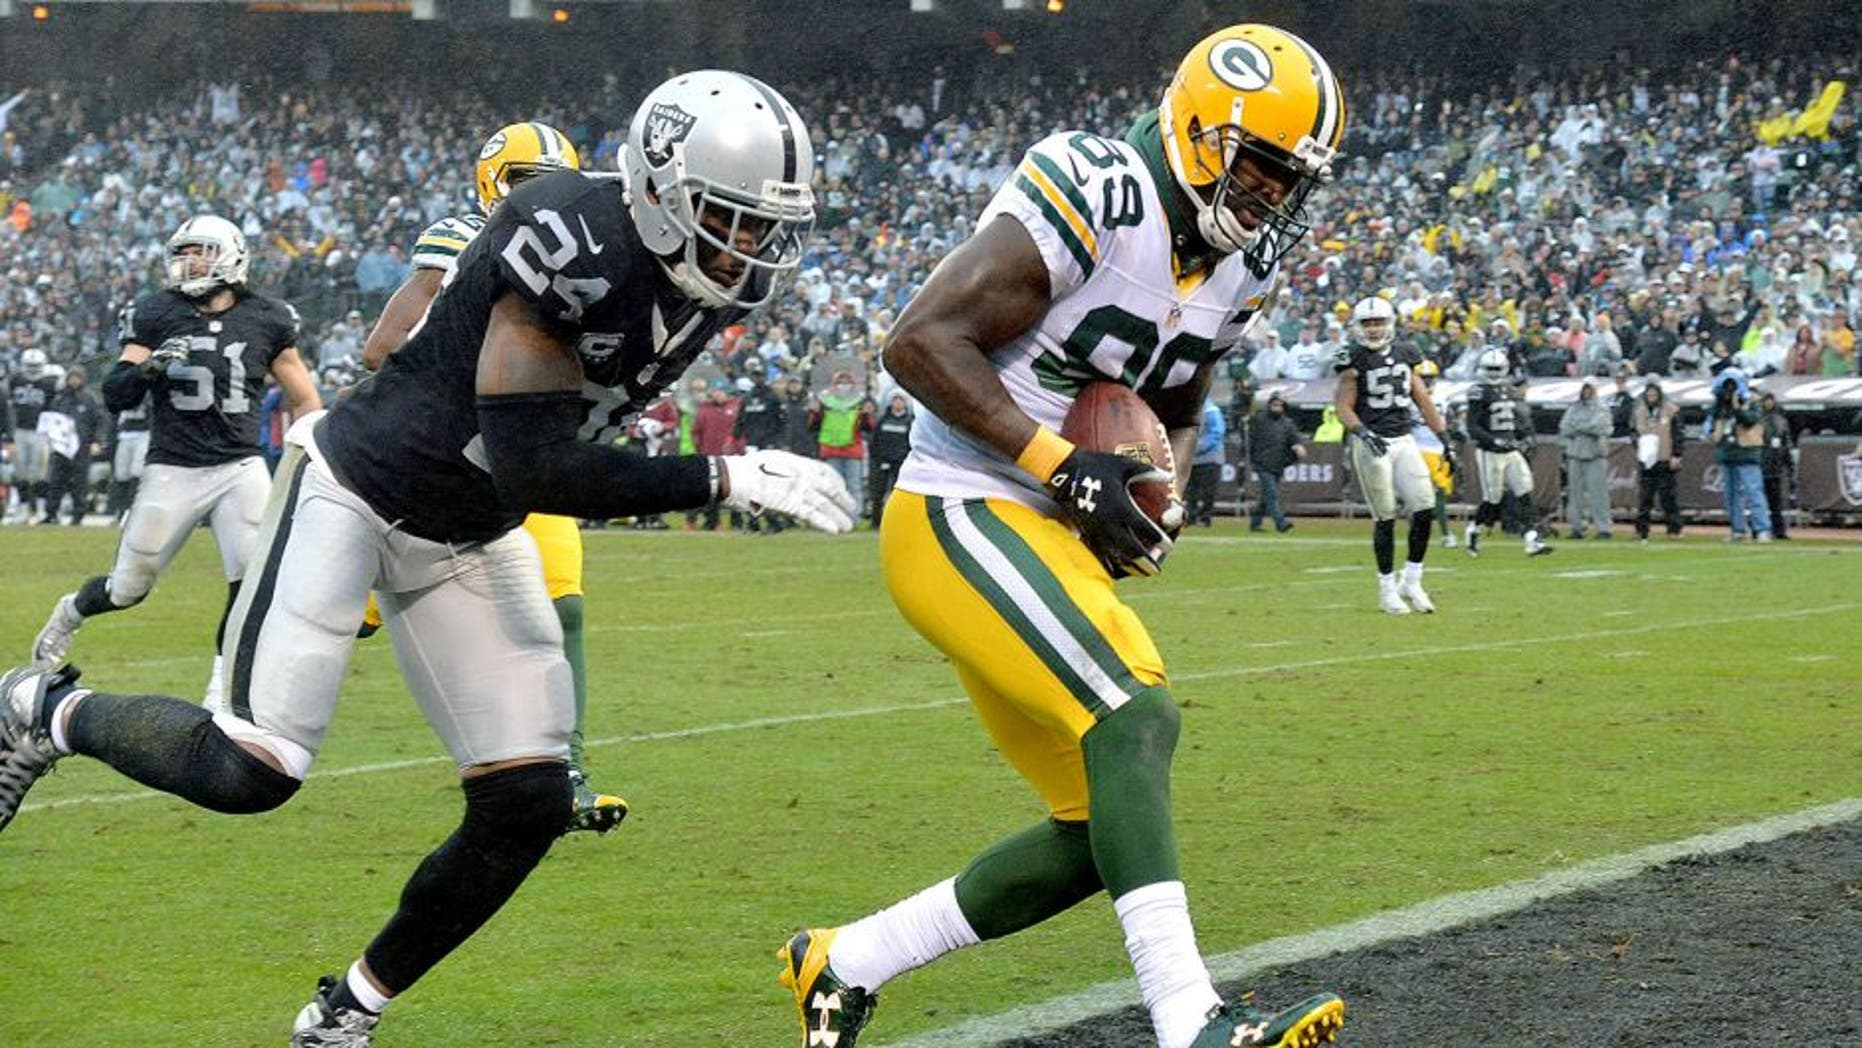 Dec 20, 2015; Oakland, CA, USA; Green Bay Packers wide receiver James Jones (89) is defended by Oakland Raiders free safety Charles Woodson (24) on a 30-yard touchdown reception in the third quarter during an NFL football game at O.co Coliseum. The Packers defeated the Raiders 30-20. Mandatory Credit: Kirby Lee-USA TODAY Sports